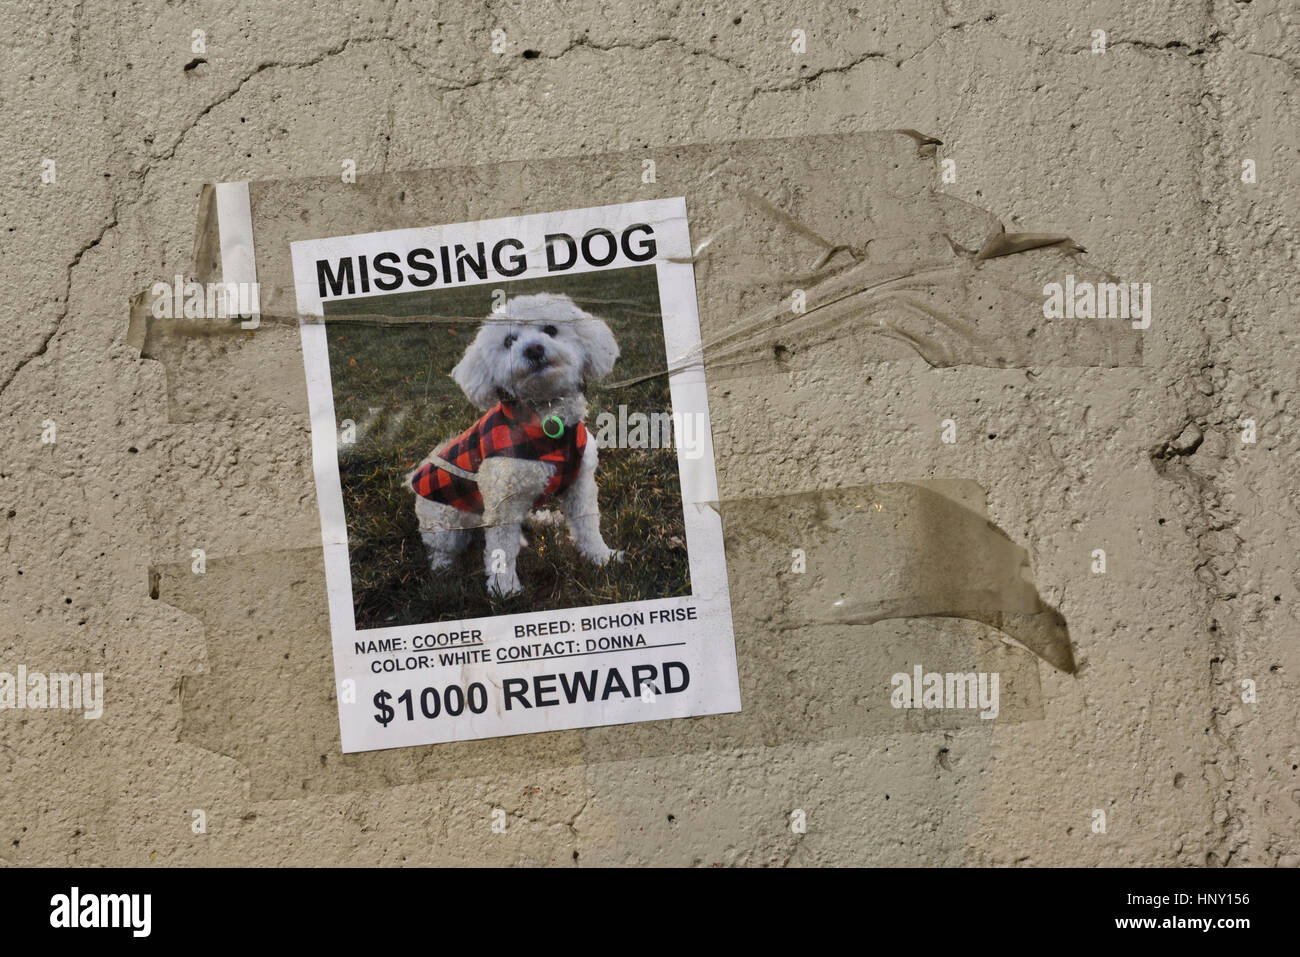 Poster taped to a concrete wall for a beloved missing pet dog a white Bichon Frise with offer of reward money - Stock Image